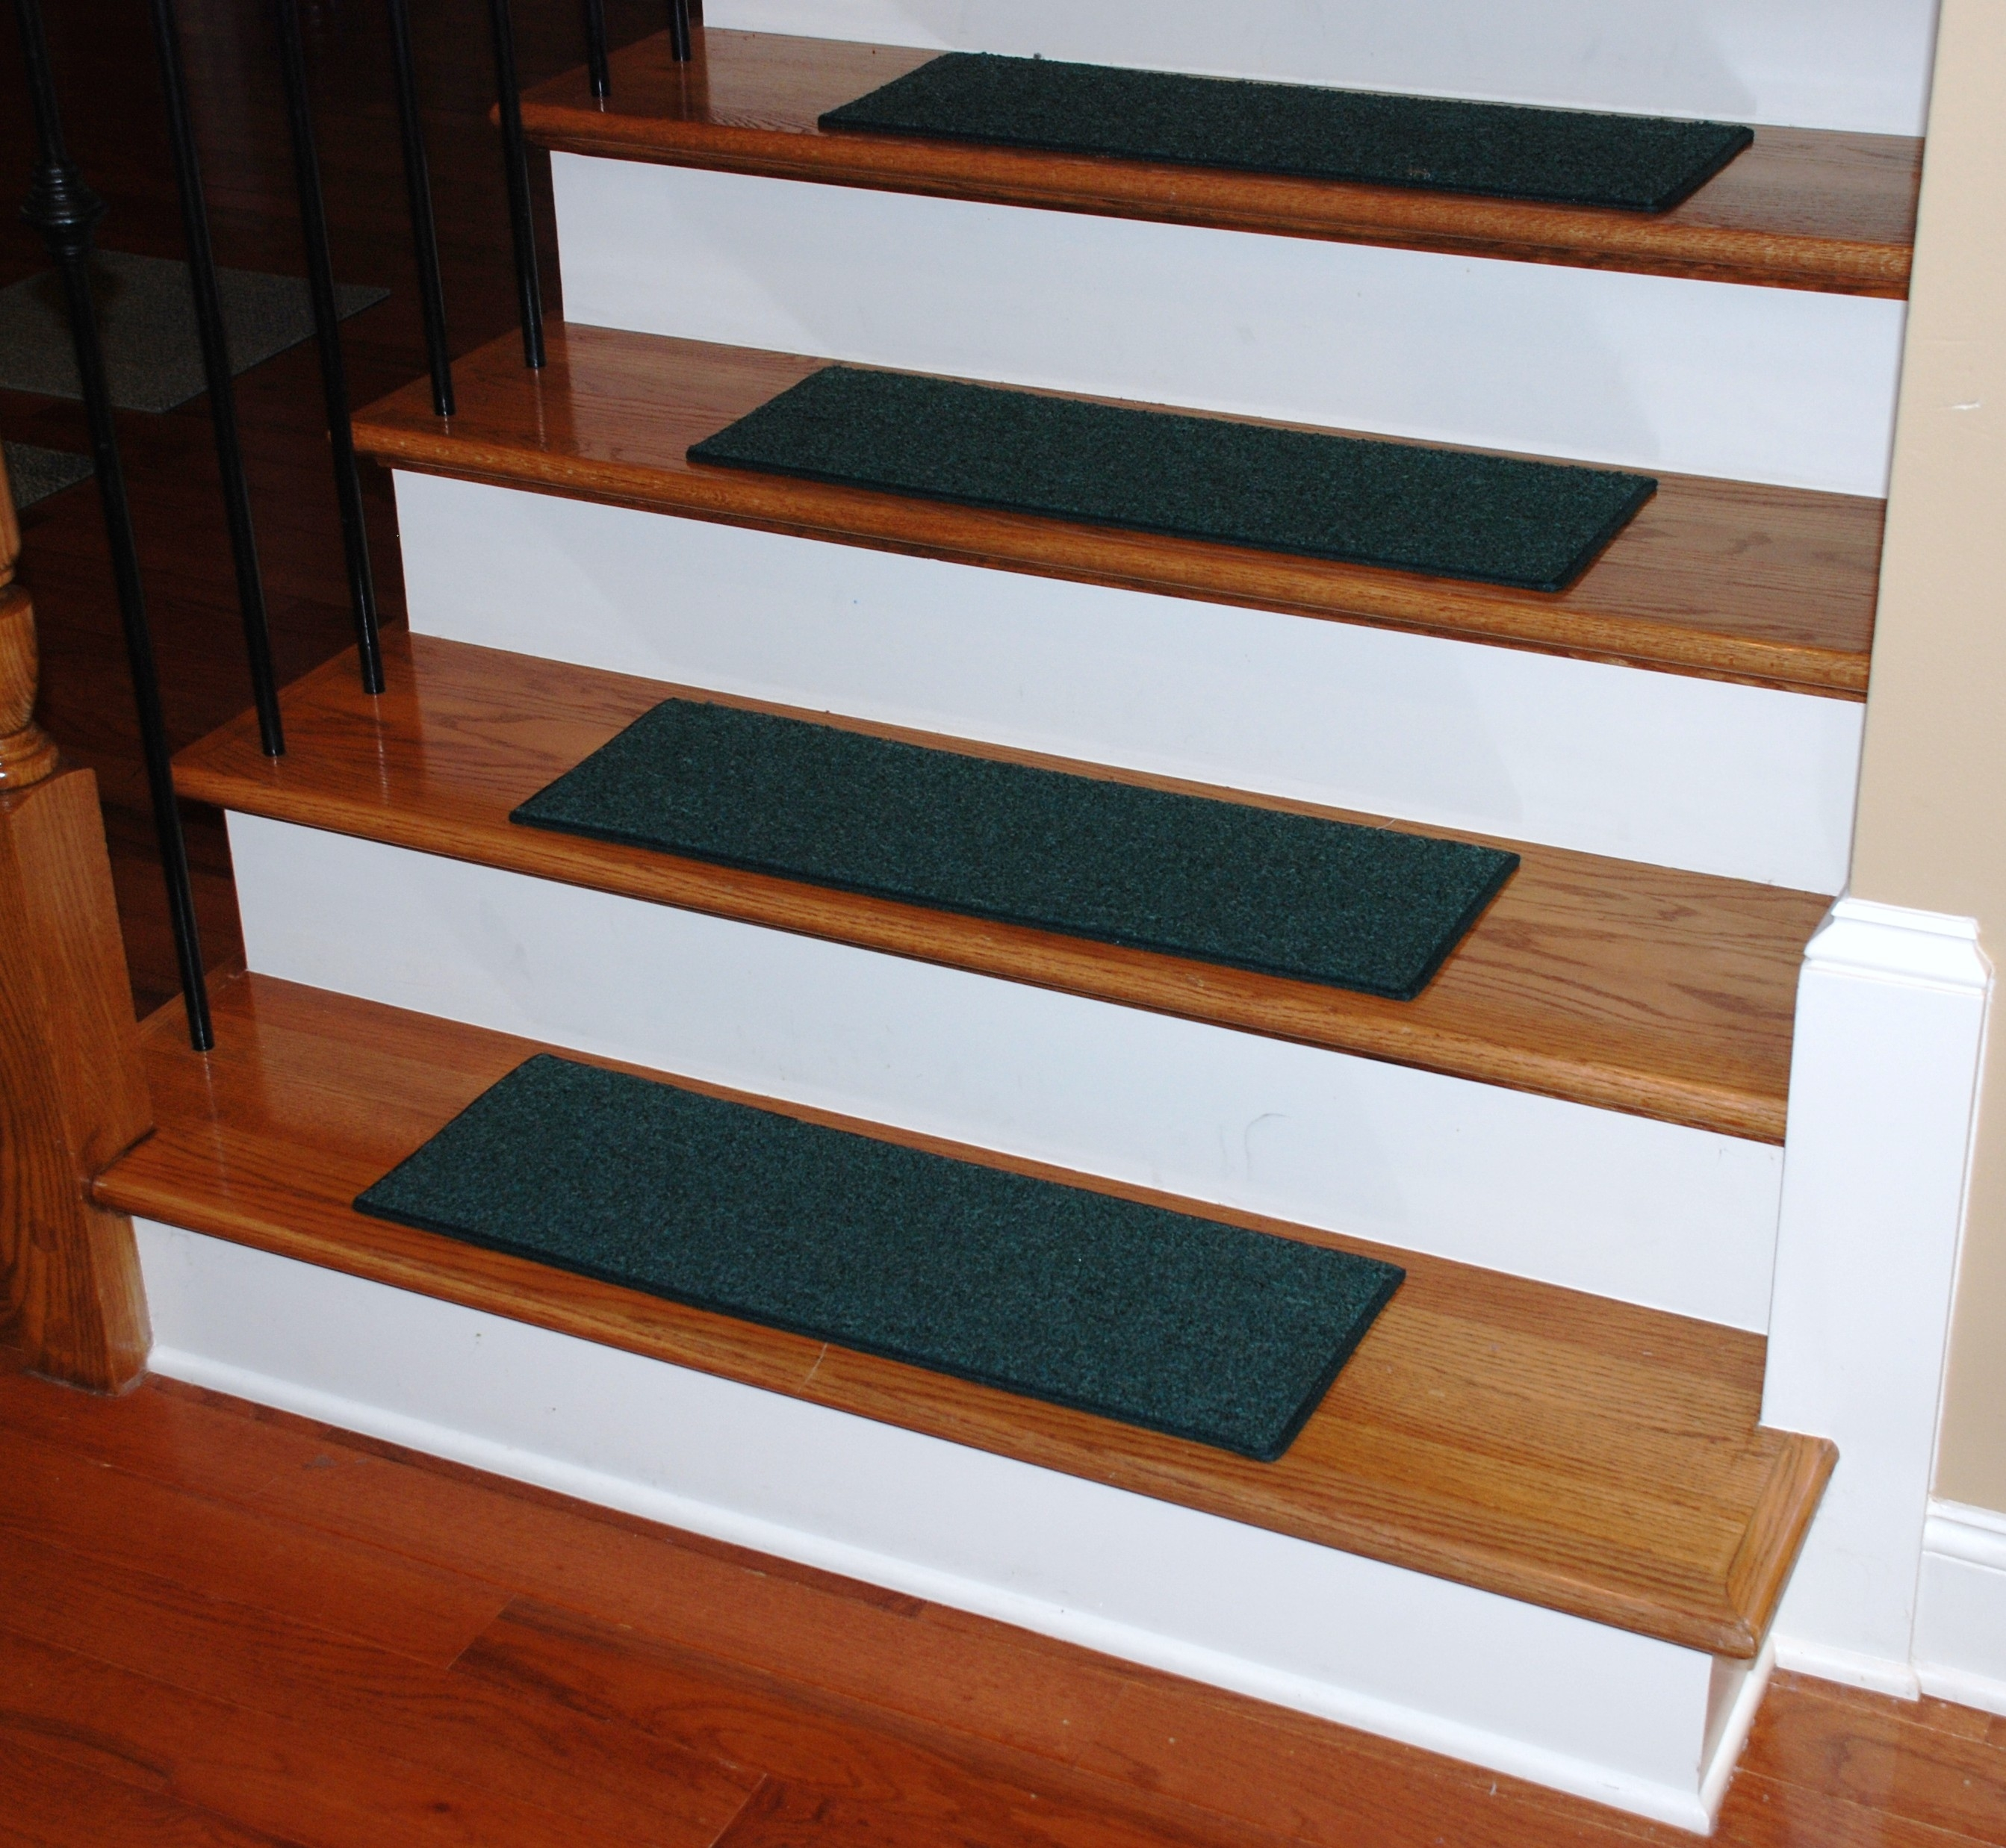 Compact Stair Tread Rugs Contemporary 30 Stair Tread Rugs Within Contemporary Stair Treads (Image 5 of 15)